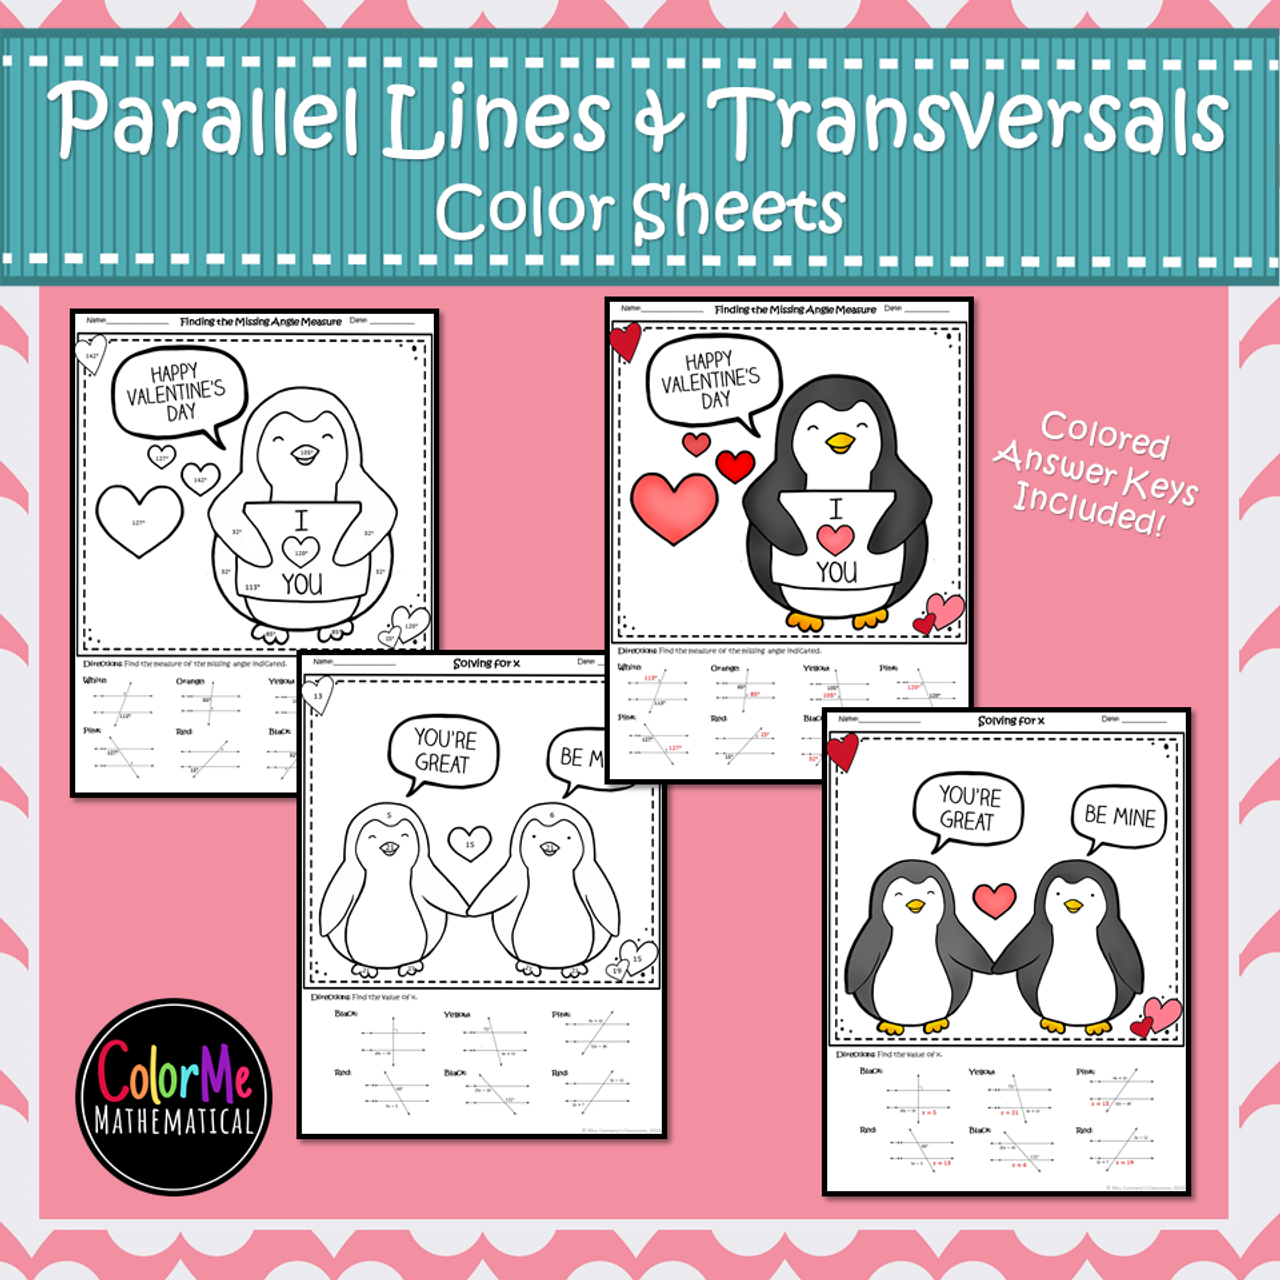 Parallel Lines cut by a Transversal Color by Number Worksheets